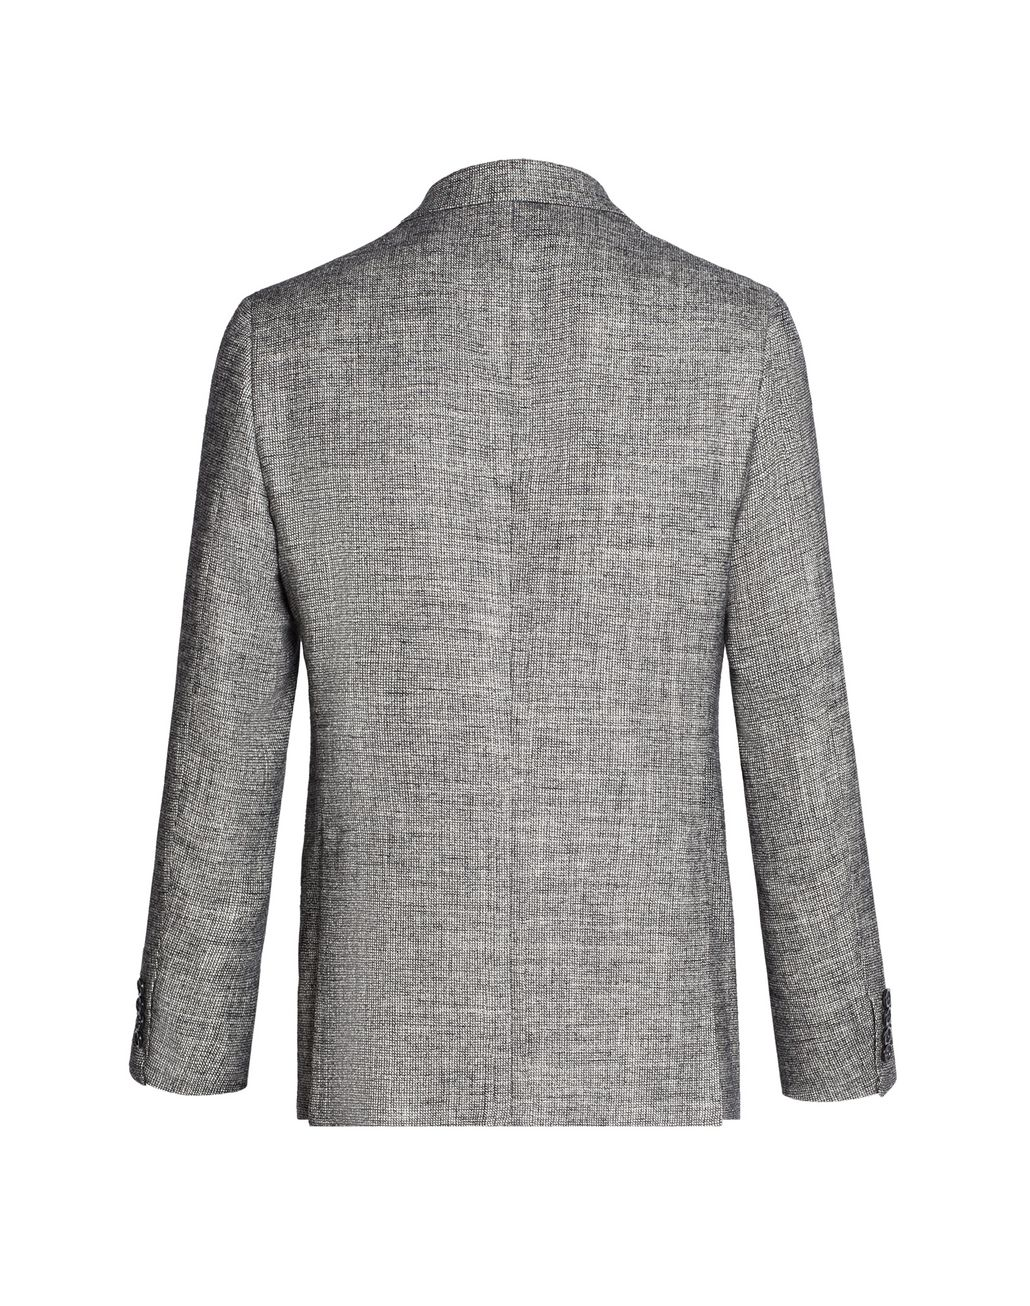 BRIONI Grey and White Ravello Jacket Jackets Man r